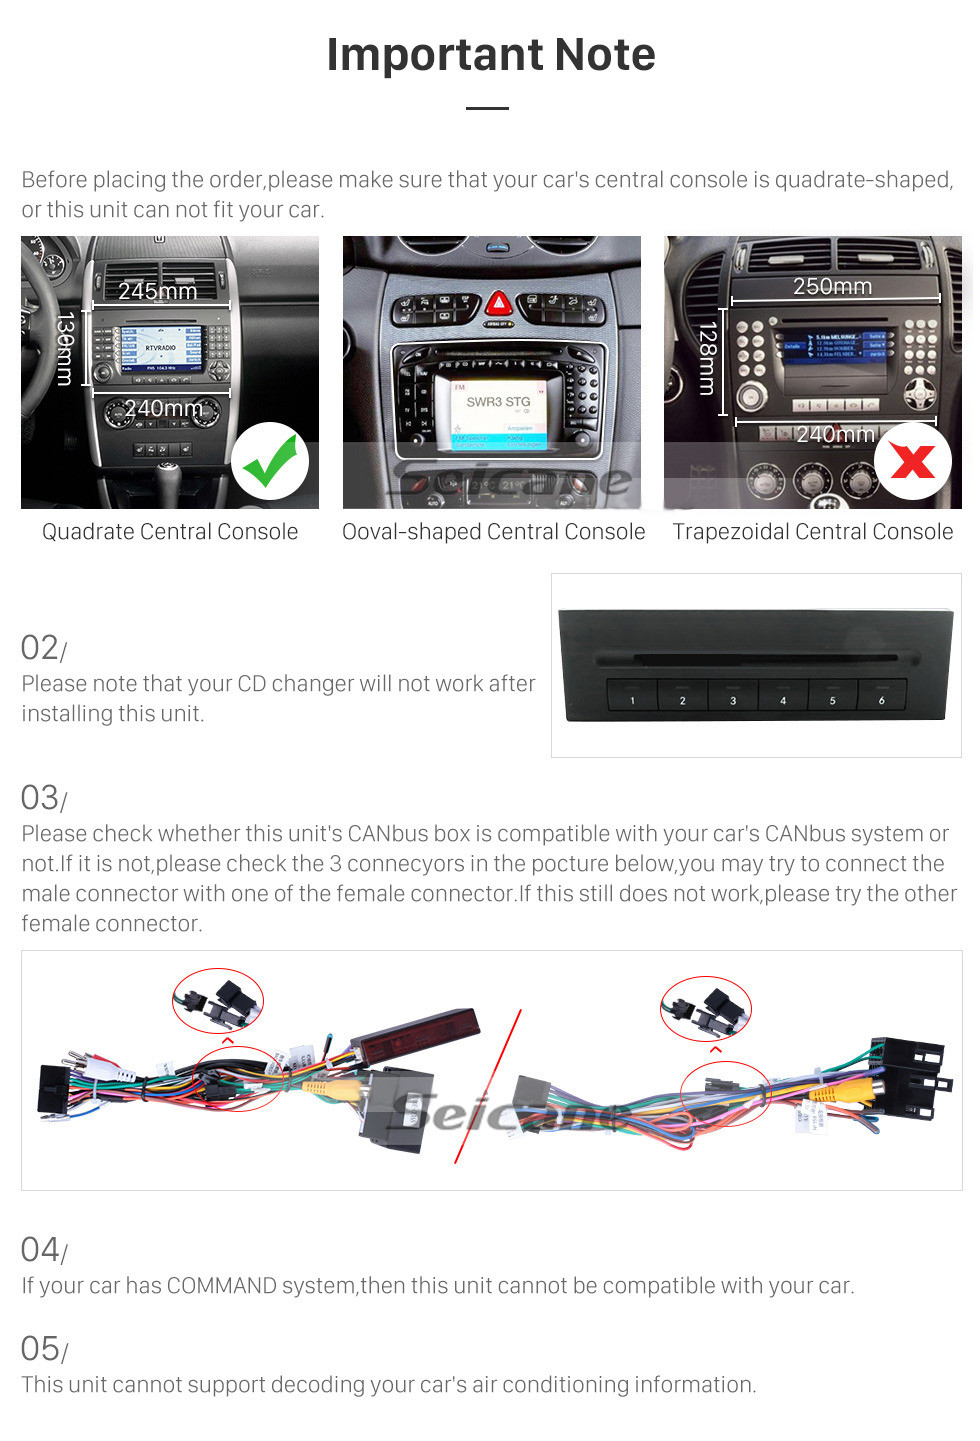 Seicane 7 Zoll Android 10.0 GPS Navigationsradio für 2006-2012 Mercedes Benz Sprinter 211 CDI 309 CDI 311 CDI 509 CDI mit Bluetooth HD Touchscreen Carplay USB AUX Unterstützung DVR 1080P Video